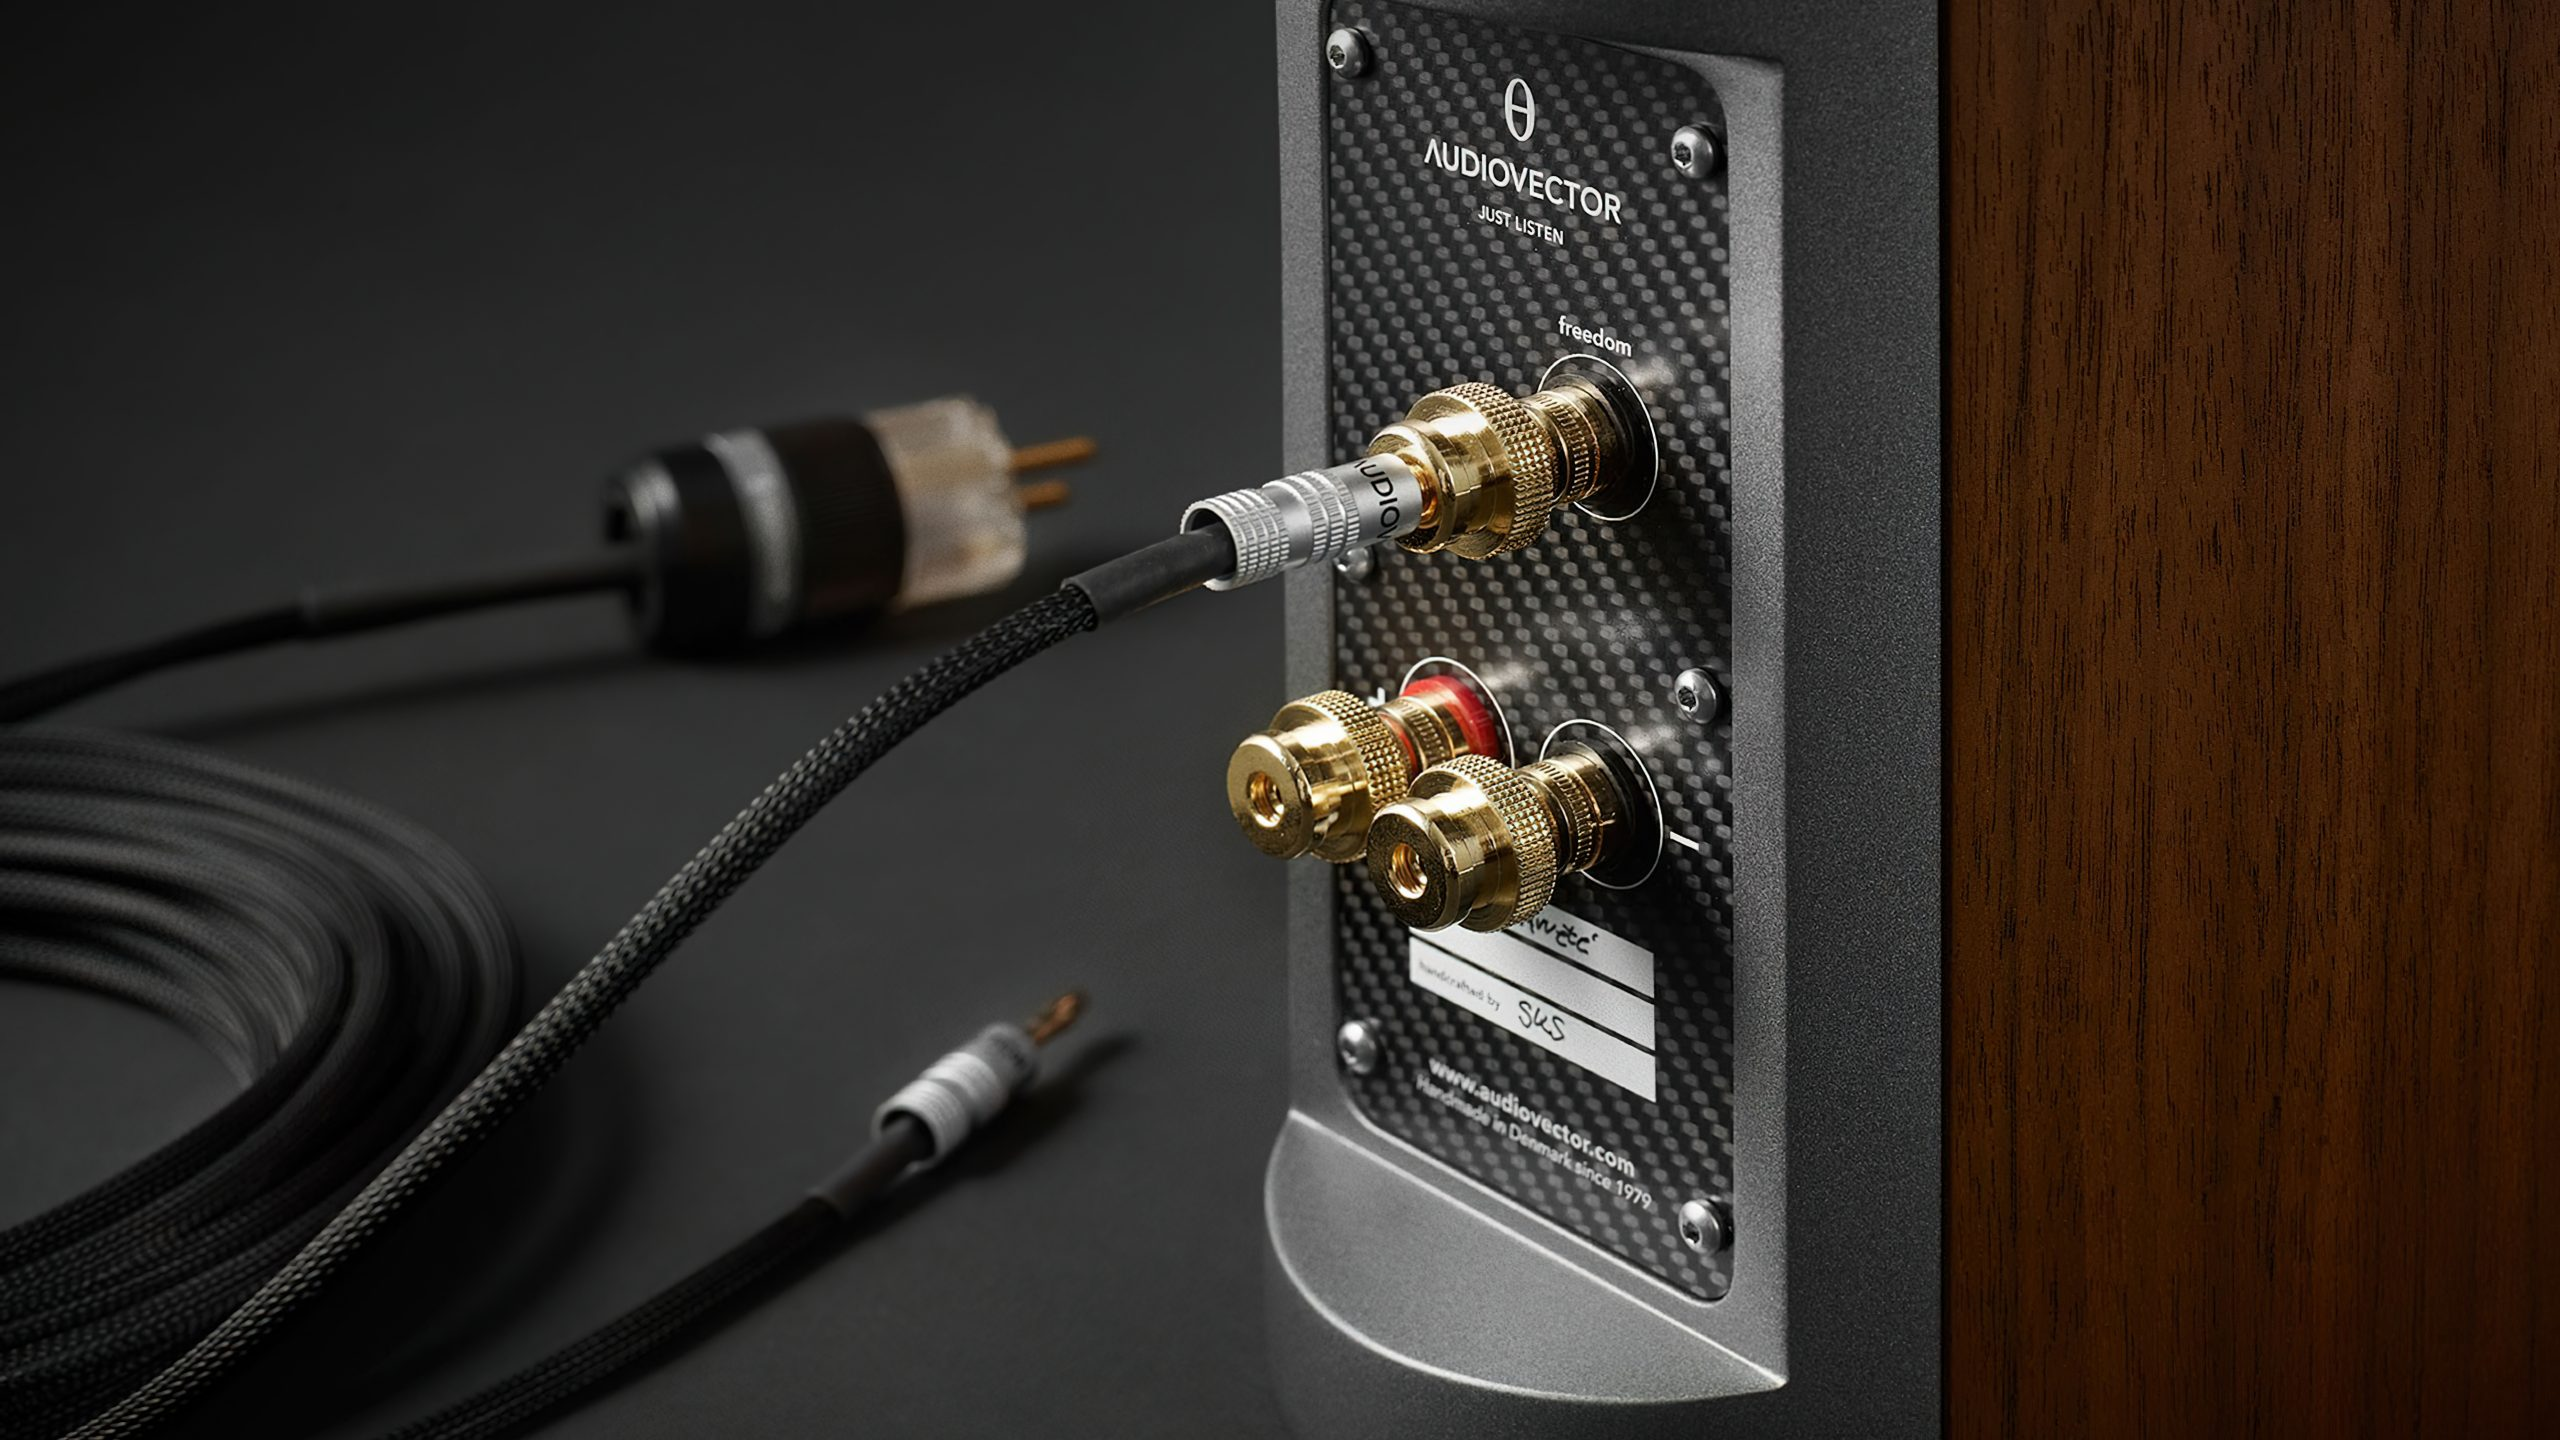 Audiovector Freedom cable